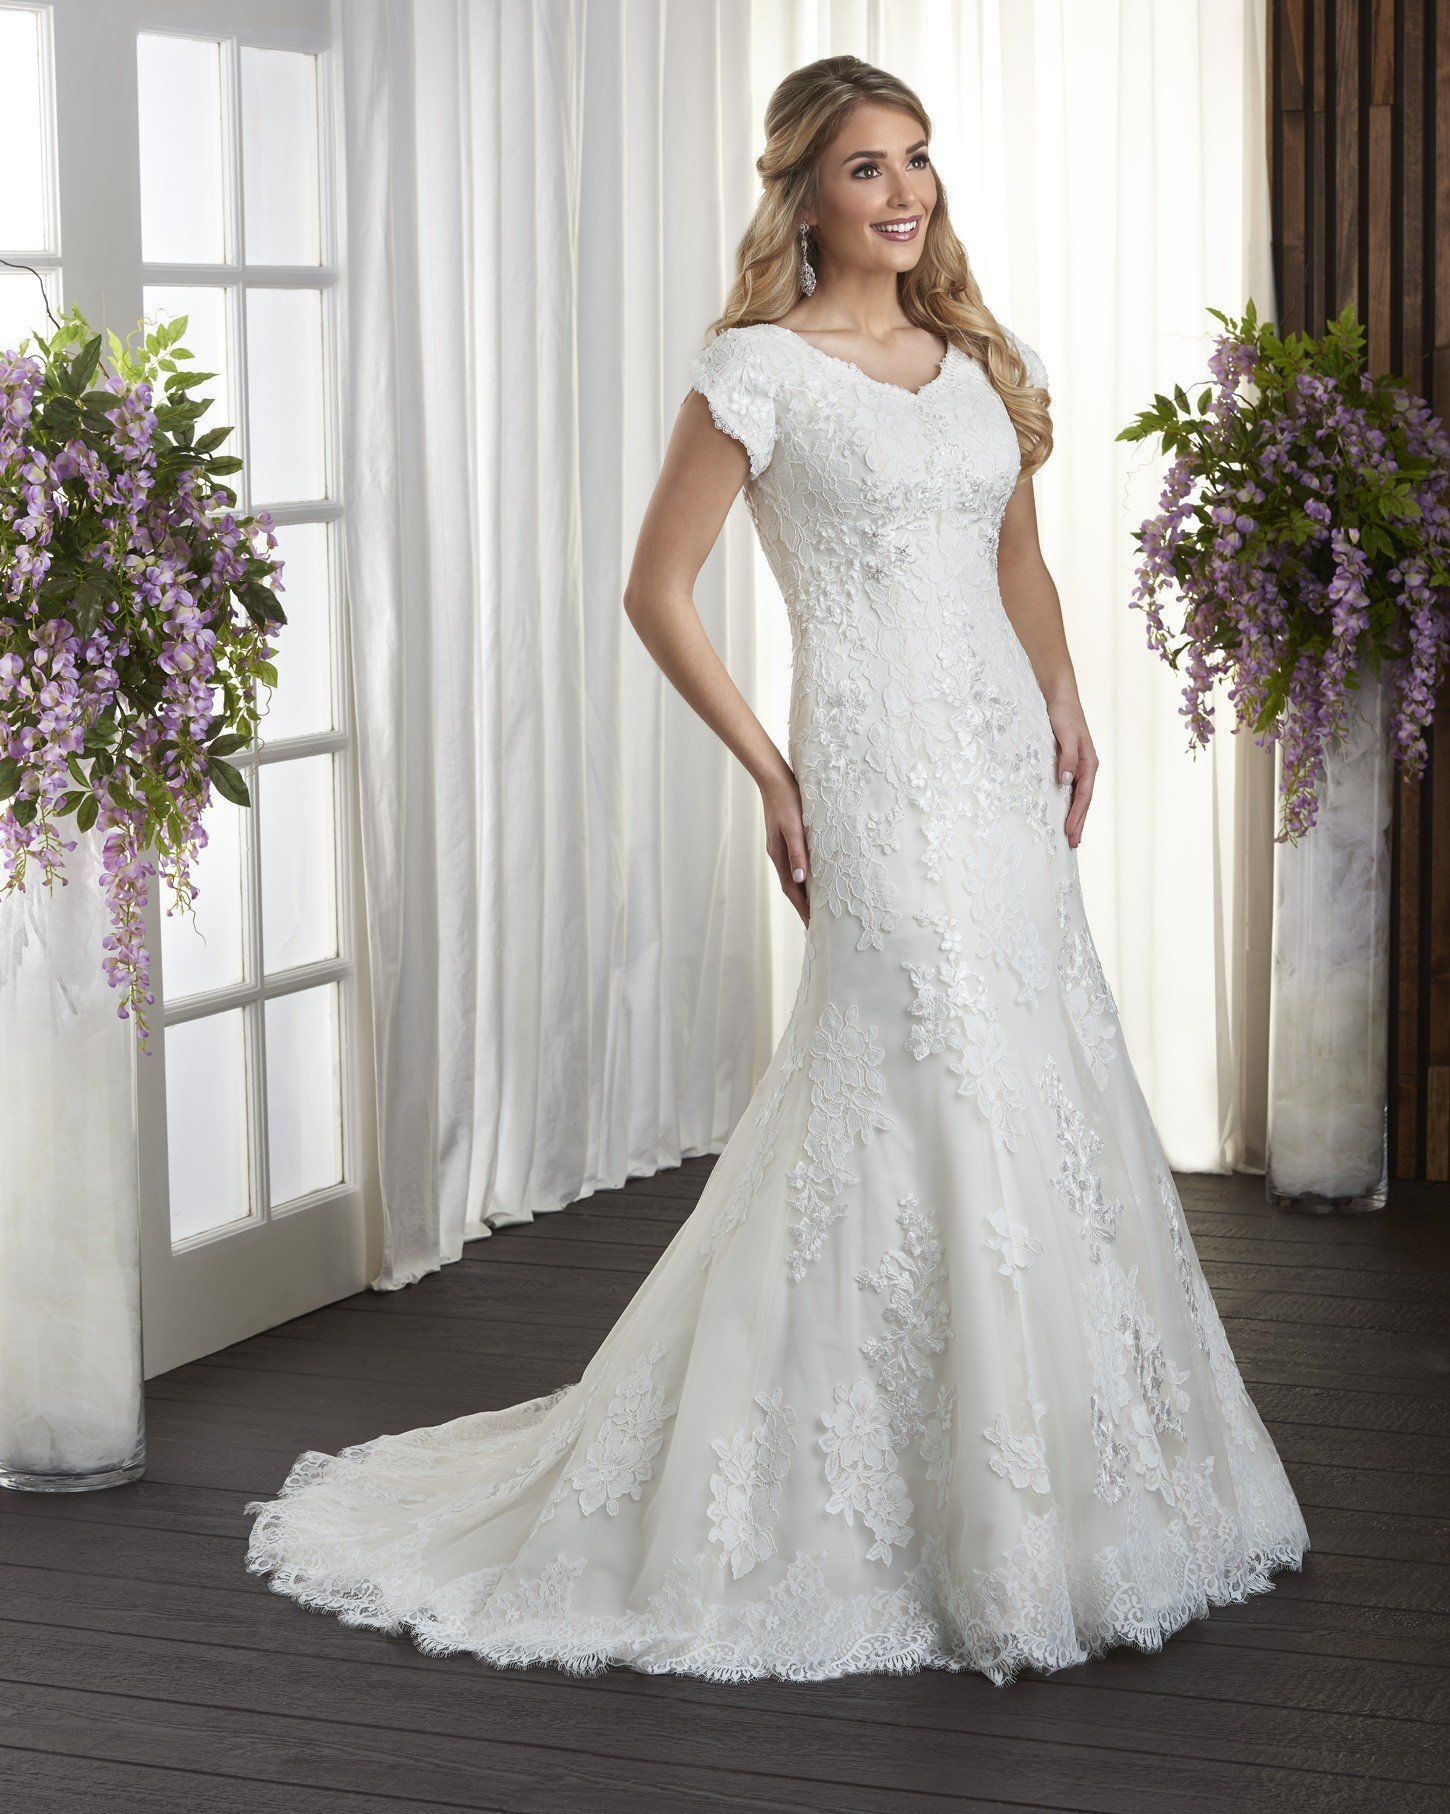 39b43764bc20 Bridal Gown, Fit'n Flare, Lace, V-Neck, Tulip Sleeves, Optional Detachable  Train/Veil, Modest, Temple Ready Wedding Gown,